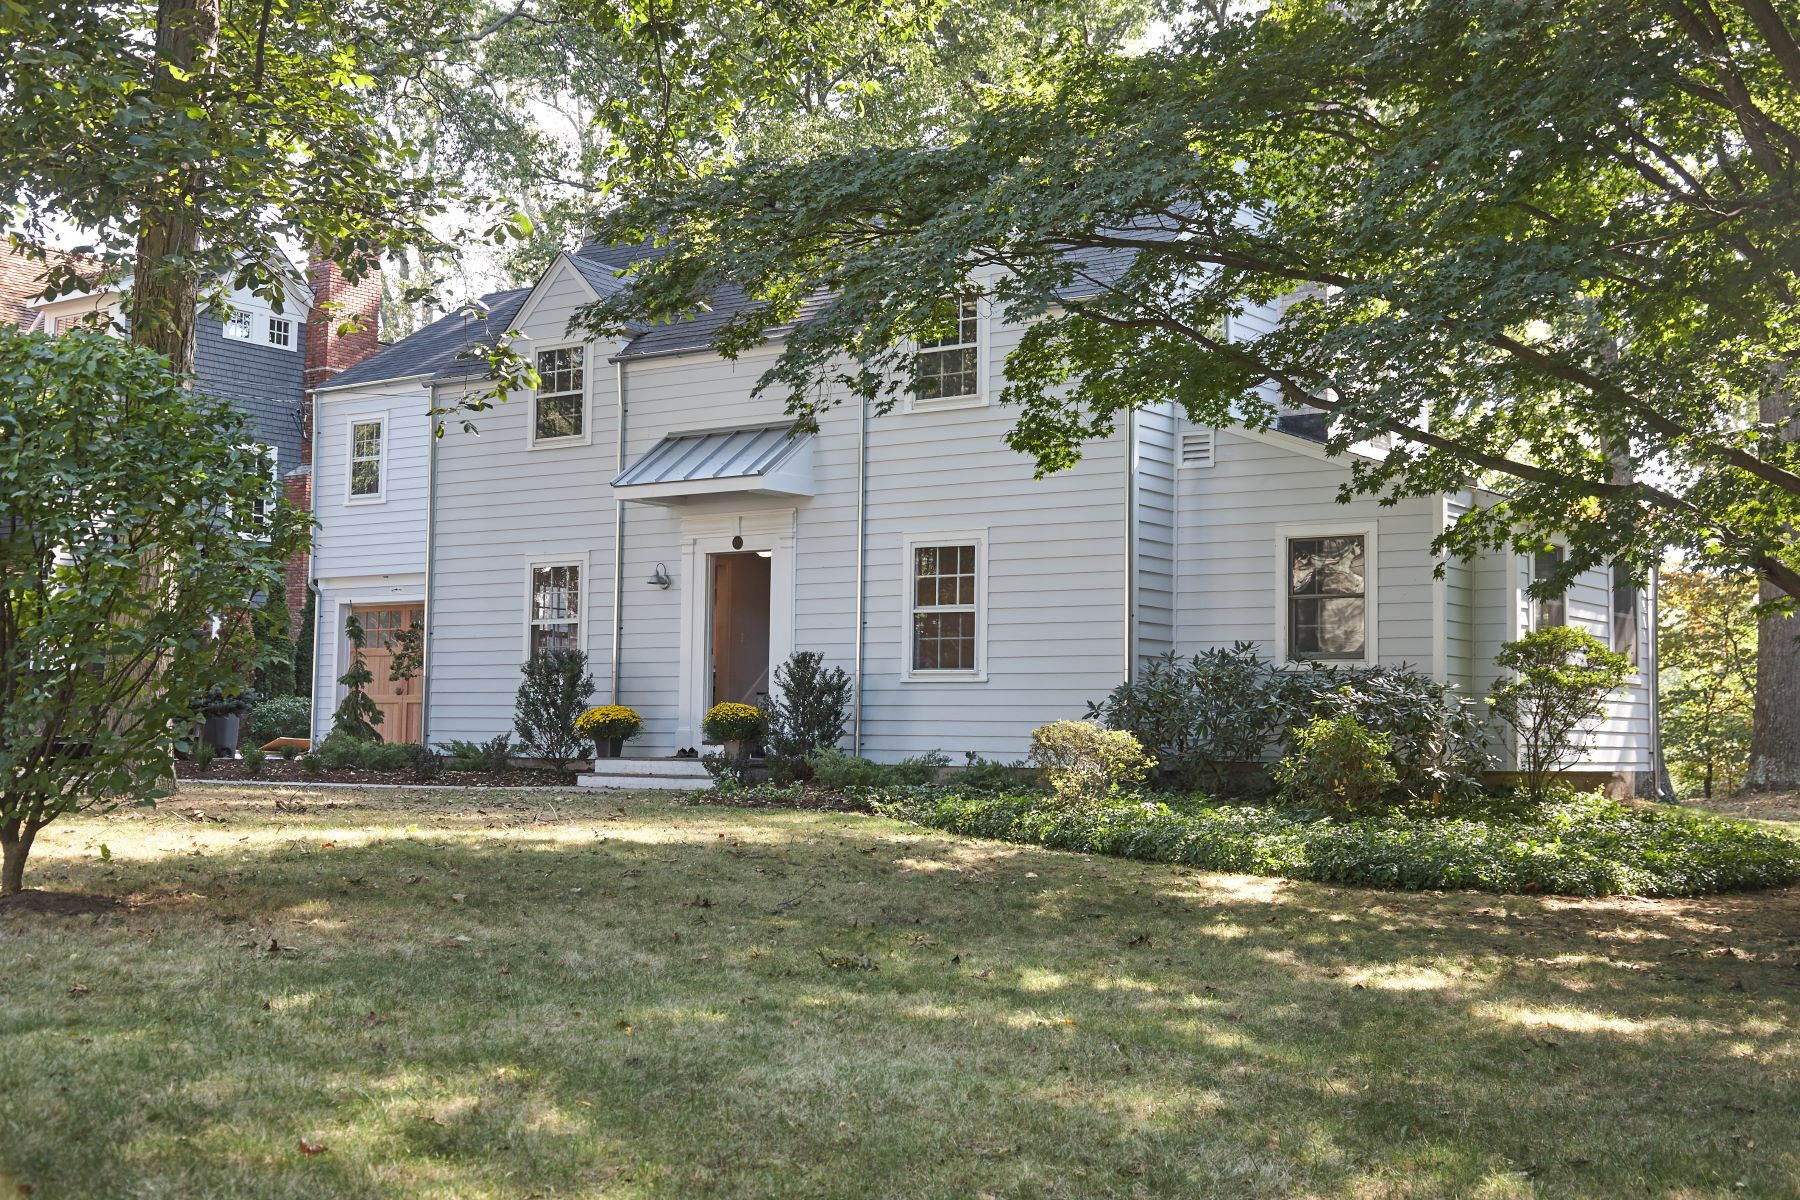 Single Family Home for Sale at Turn-Key Home With Stylish Flair 103 Rock Major Road, Fairfield, Connecticut, 06824 United States